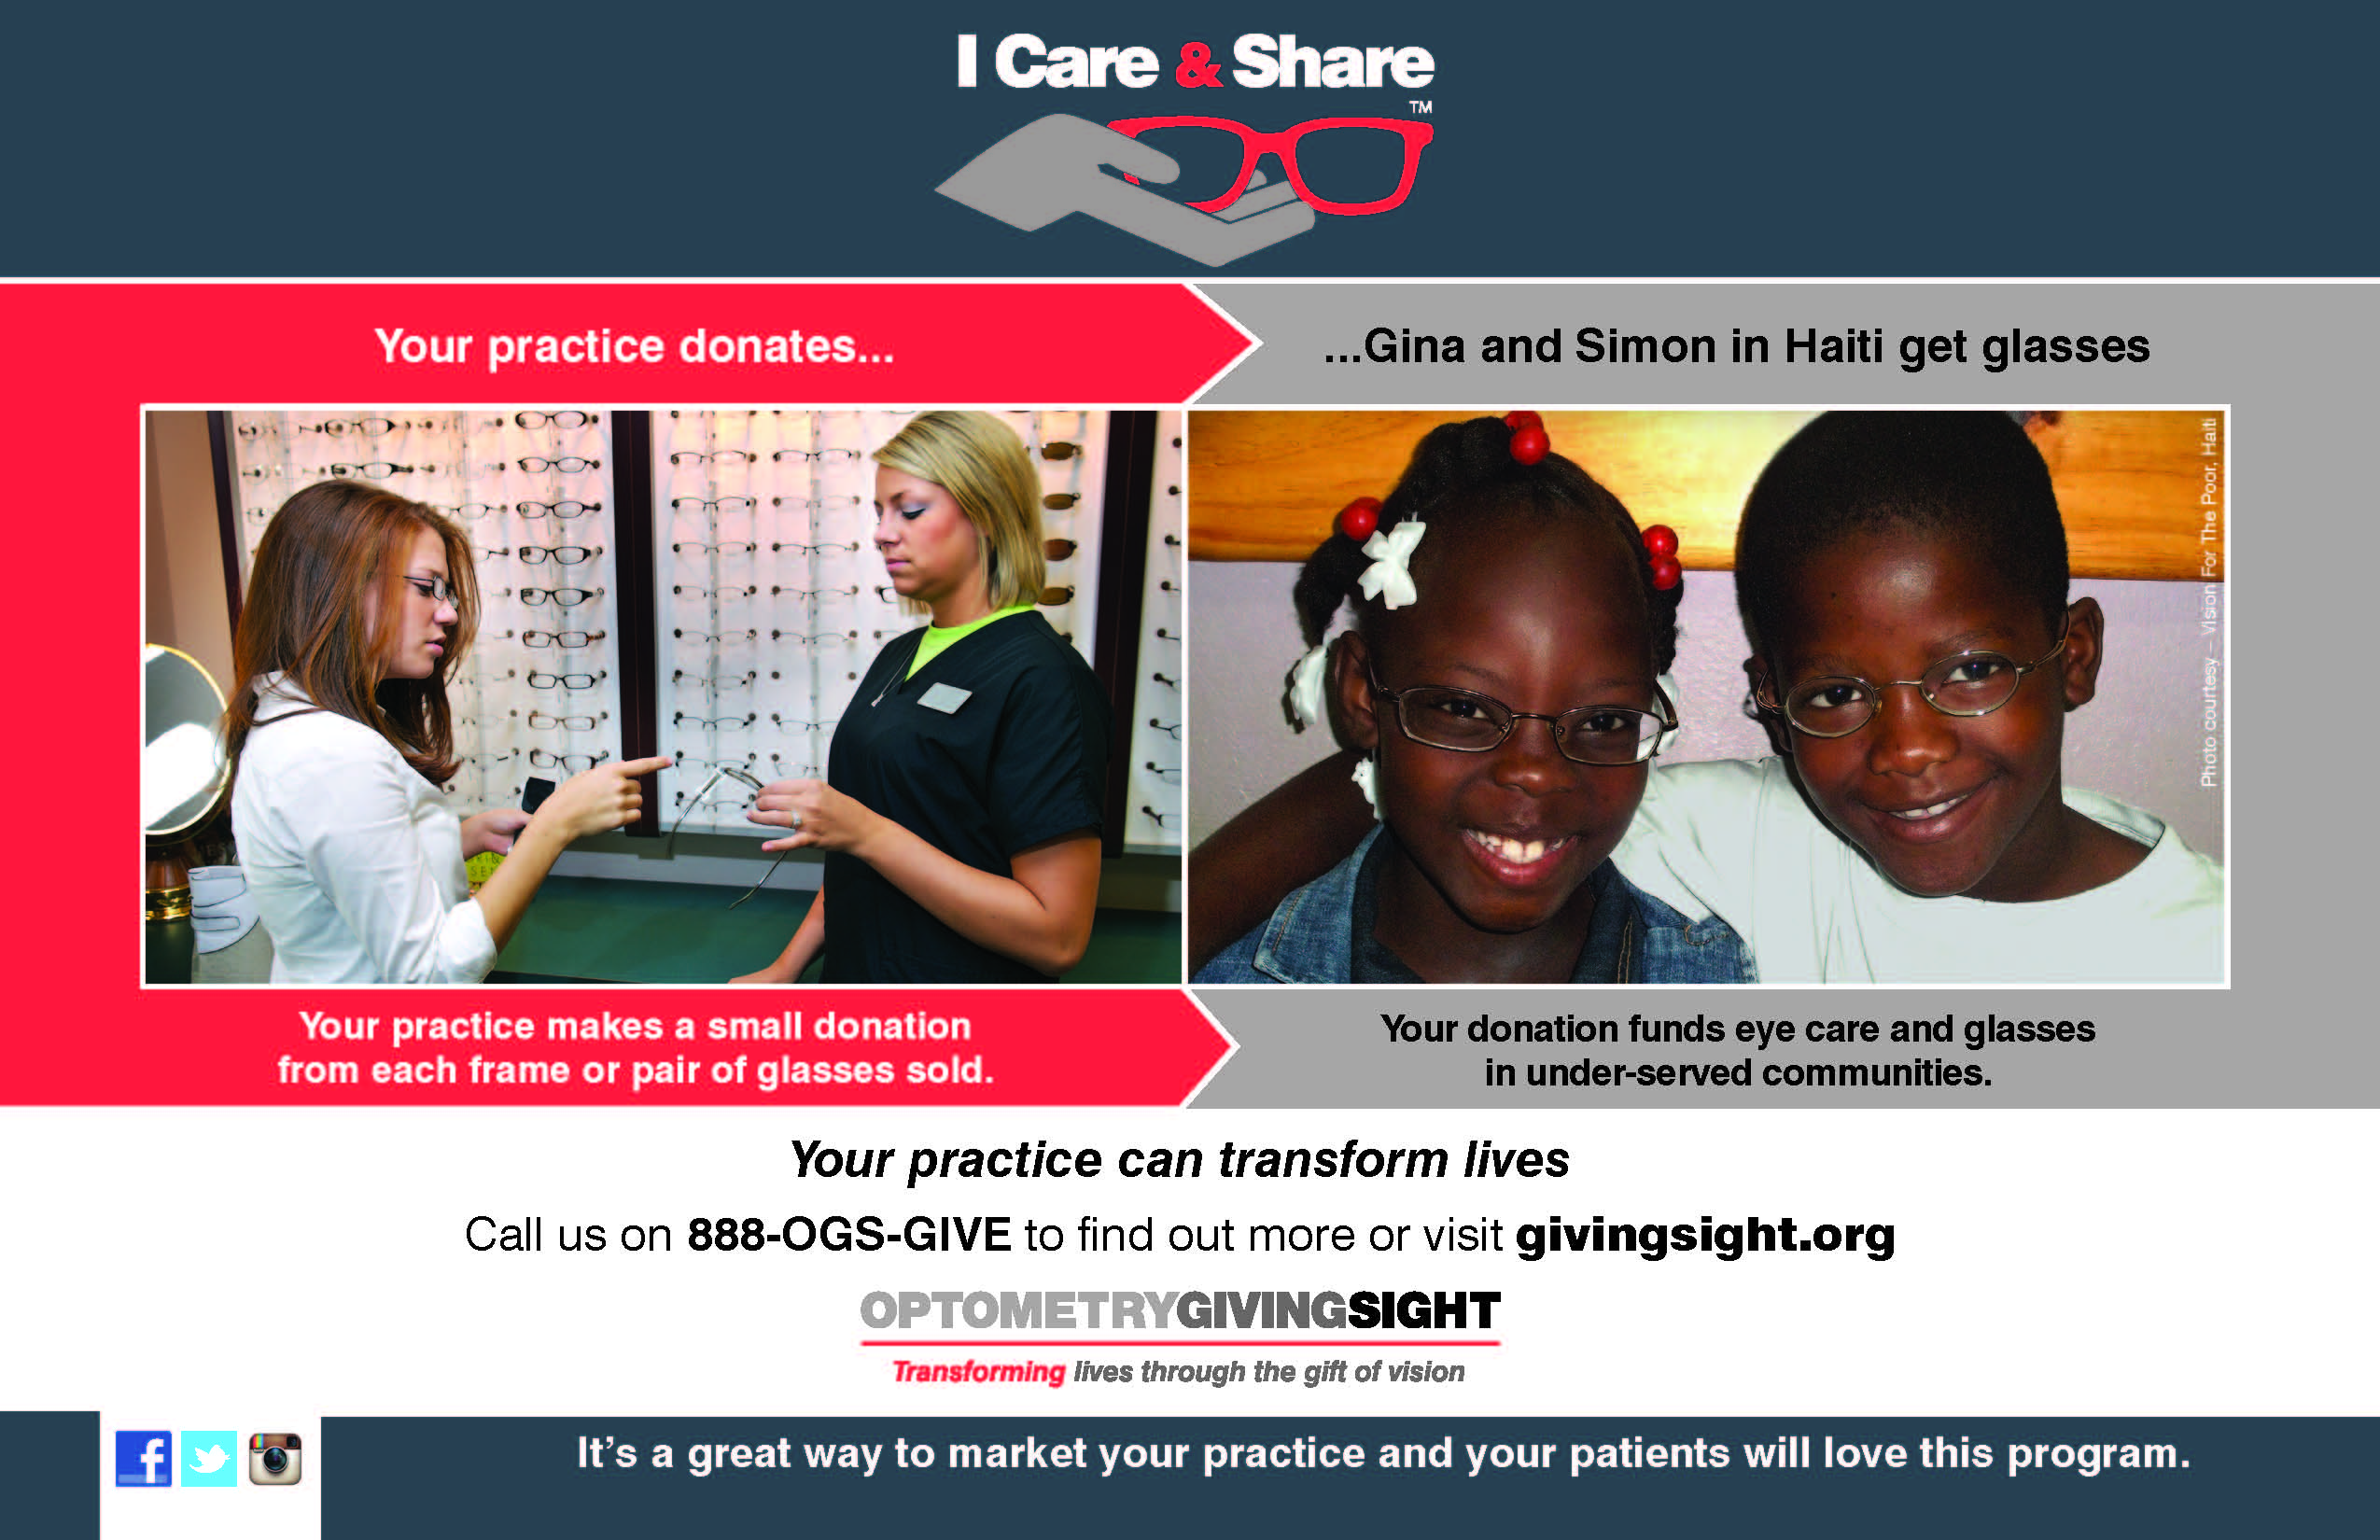 I Care & Share – Giving Back with The Gift of Vision